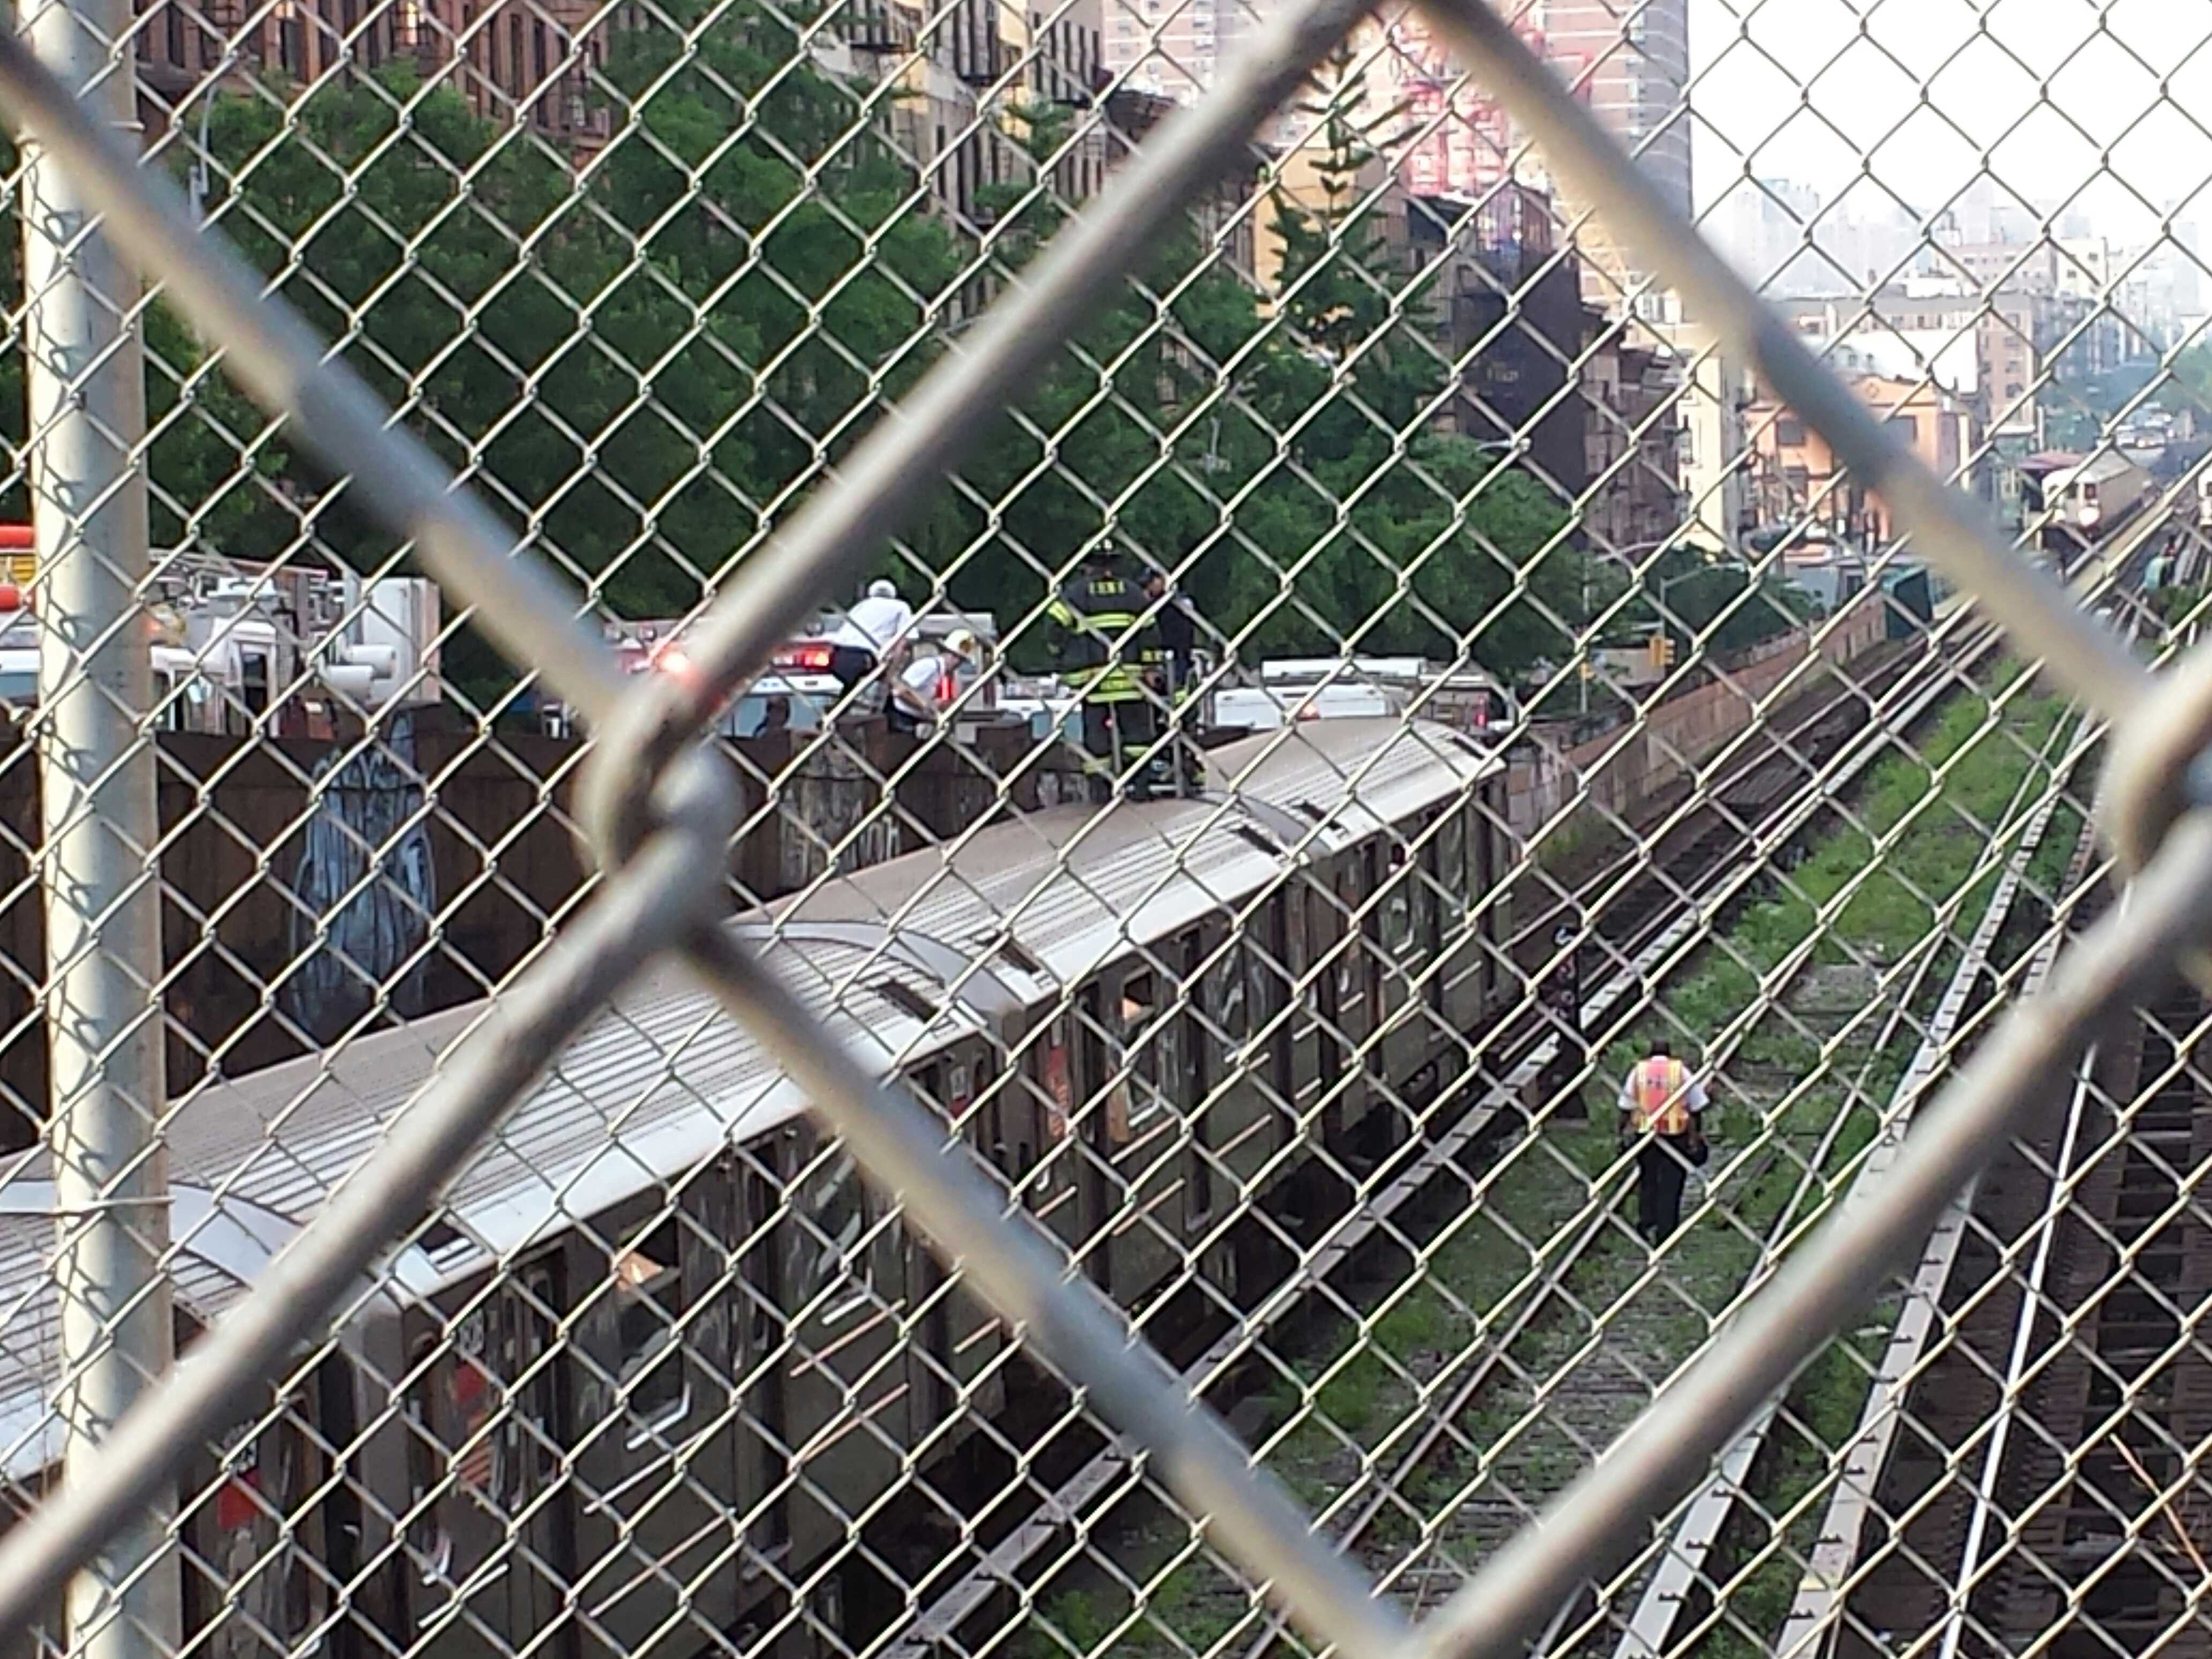 A 1 line train derailed in New York, New York, on May 29, 2013. (Steve Silva)